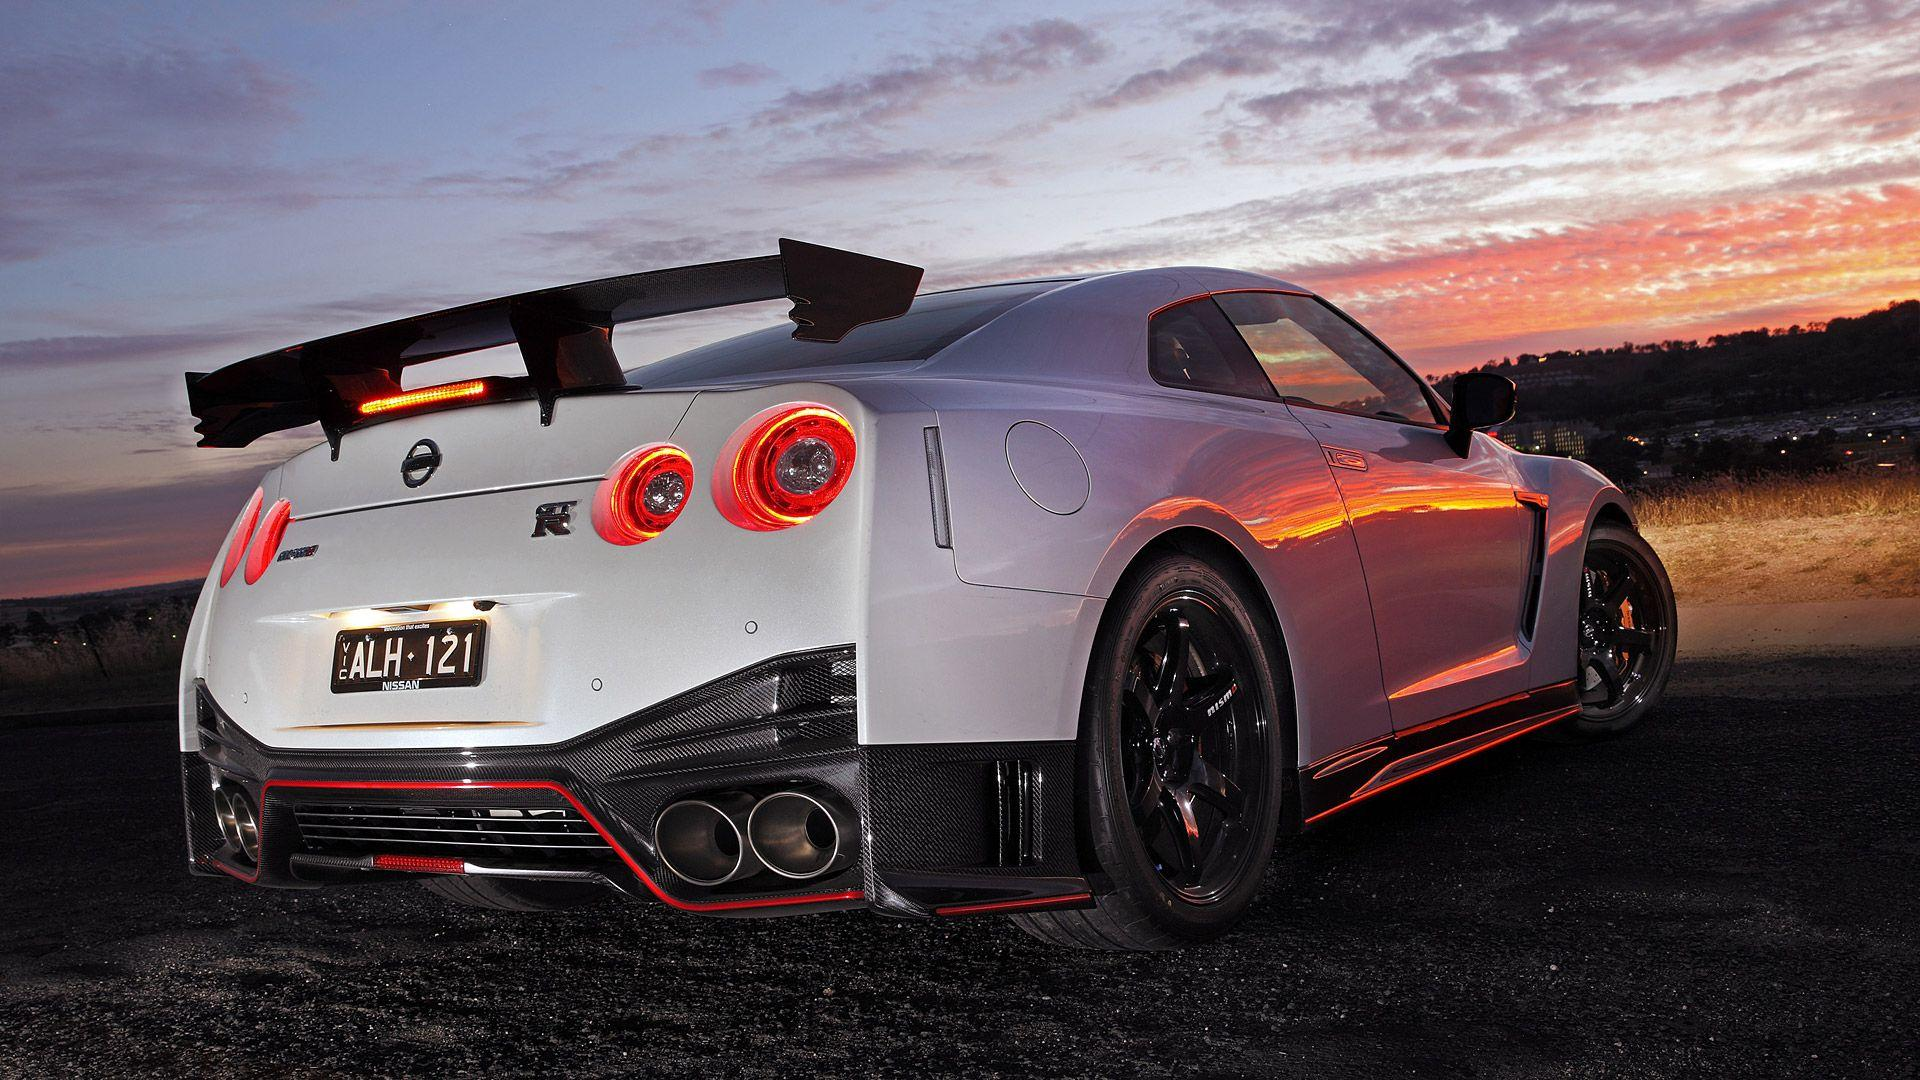 nissan skyline gtr sports car wallpapers, history of this car, technical specs and other recommended resources about the skyline gtr. Nissan Gt R Nismo Wallpapers Wallpaper Cave